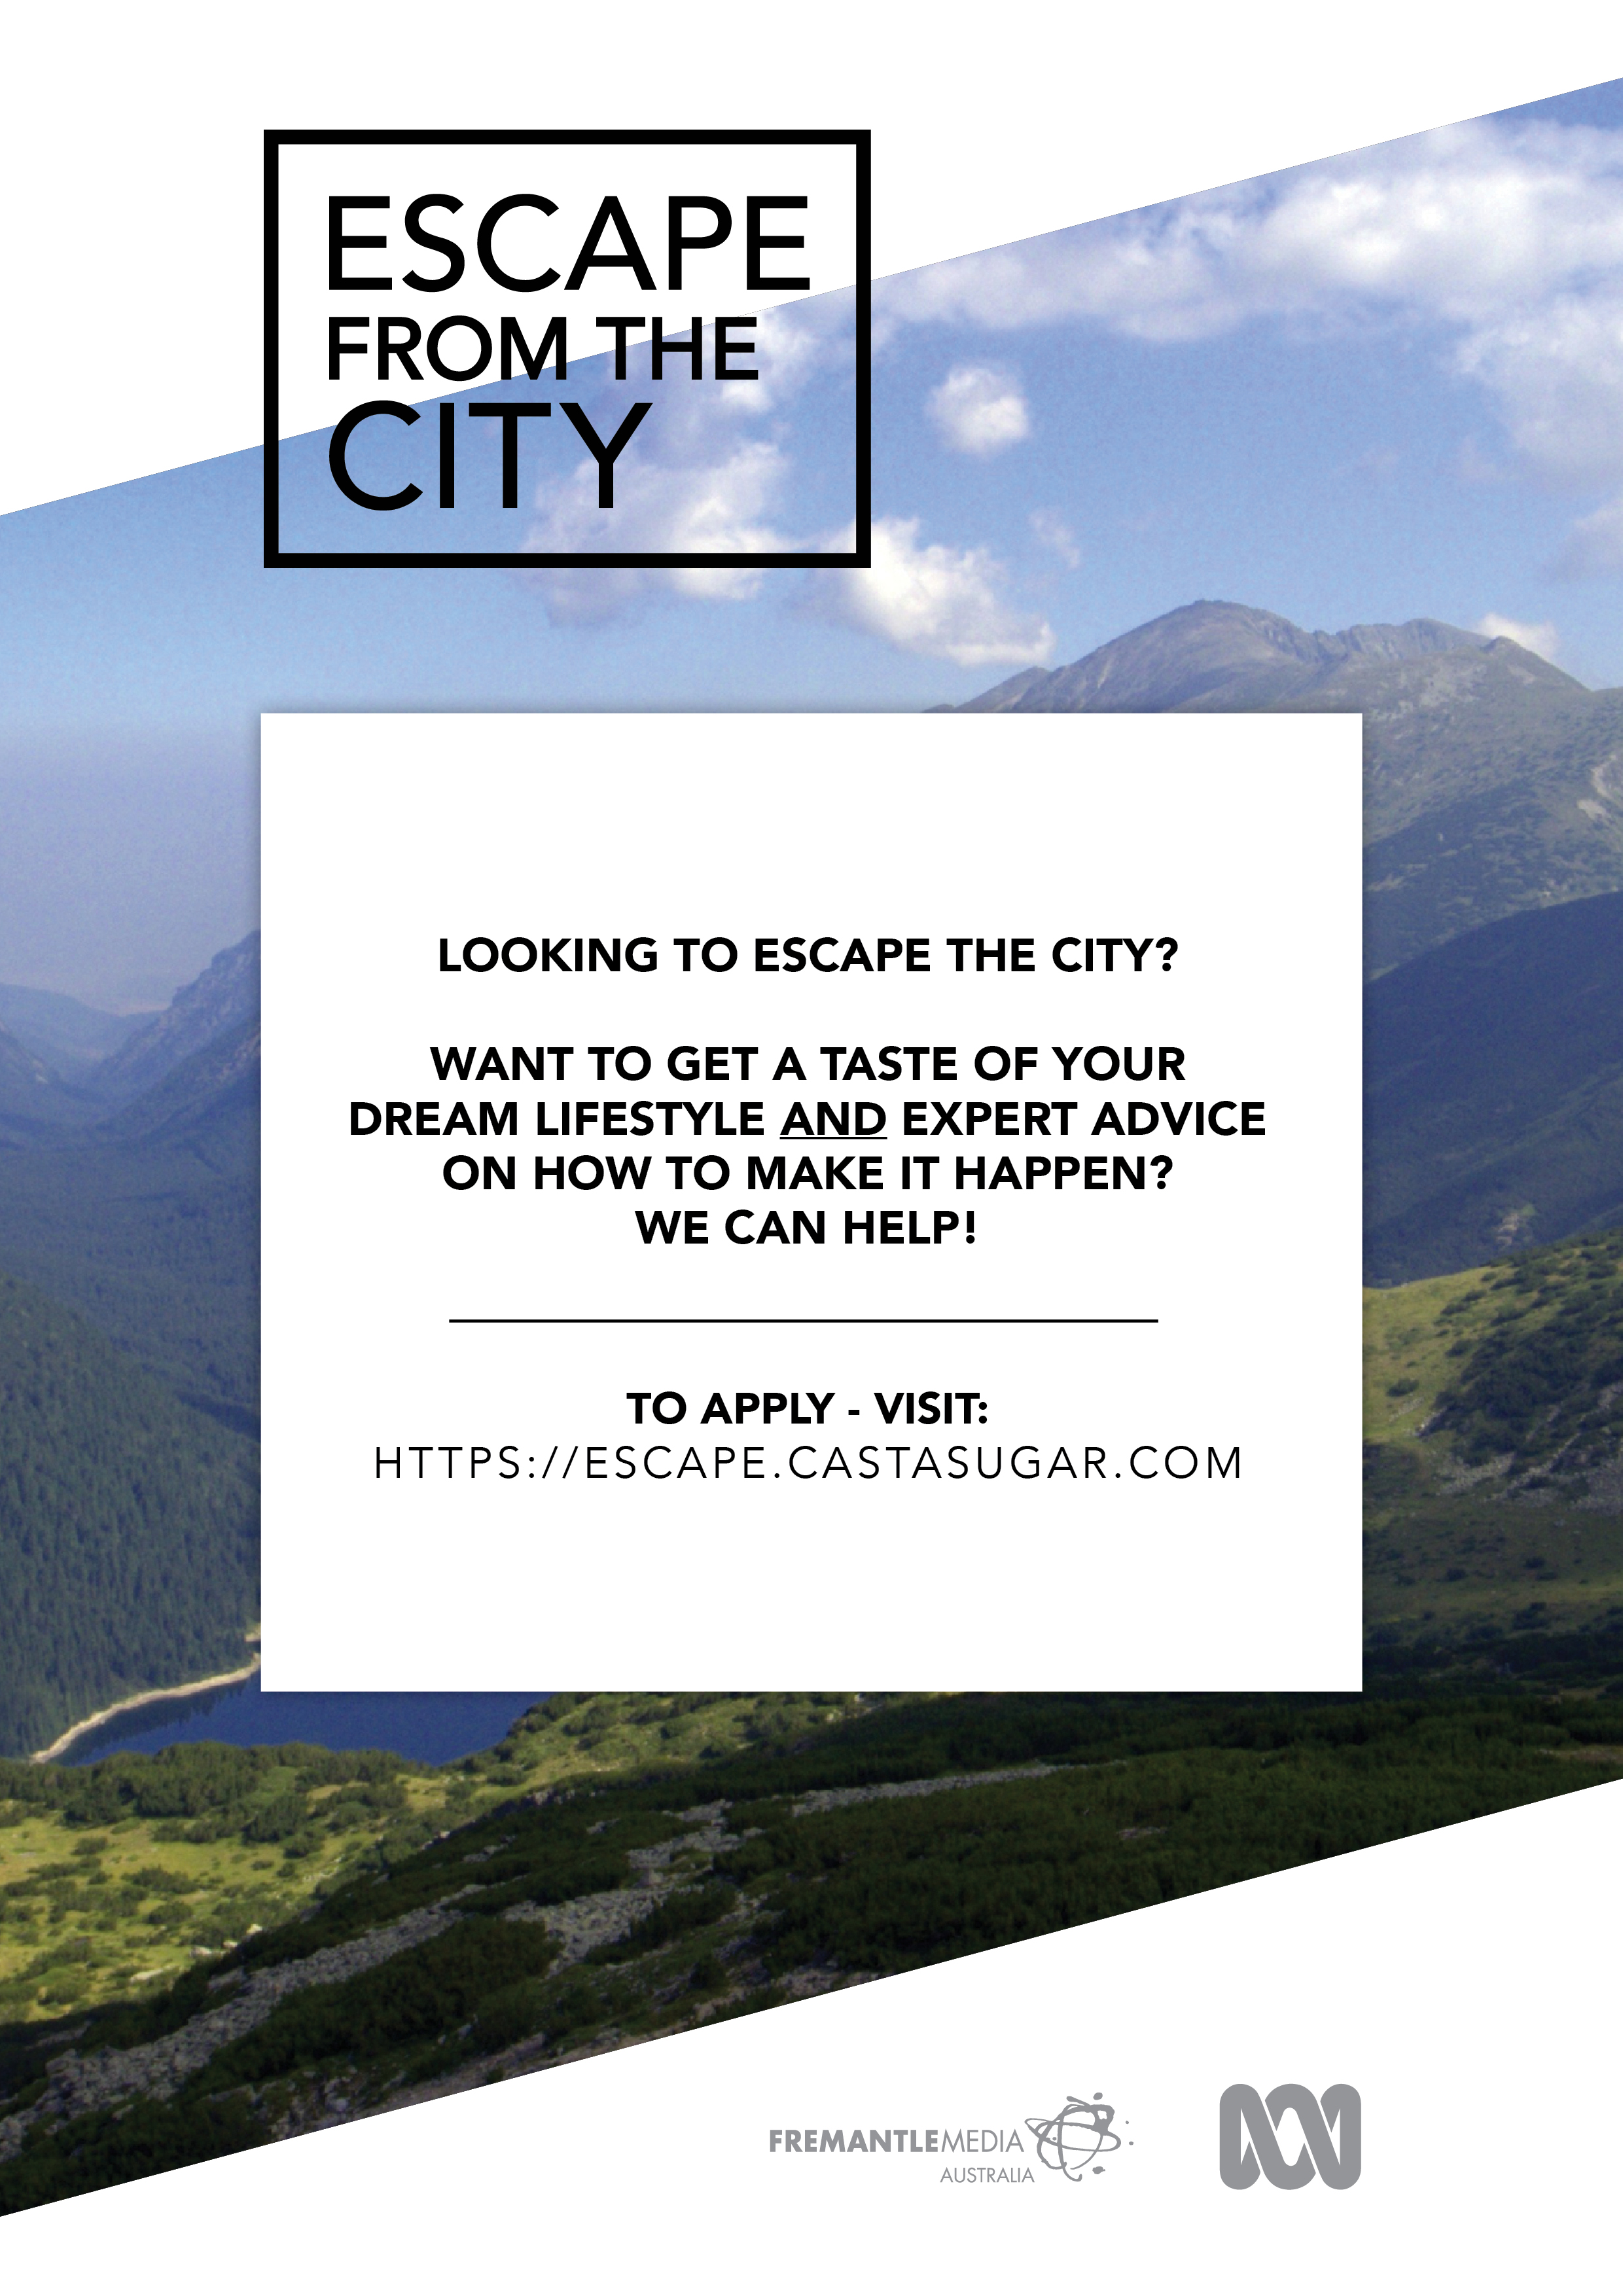 Are you looking to Escape from the City?